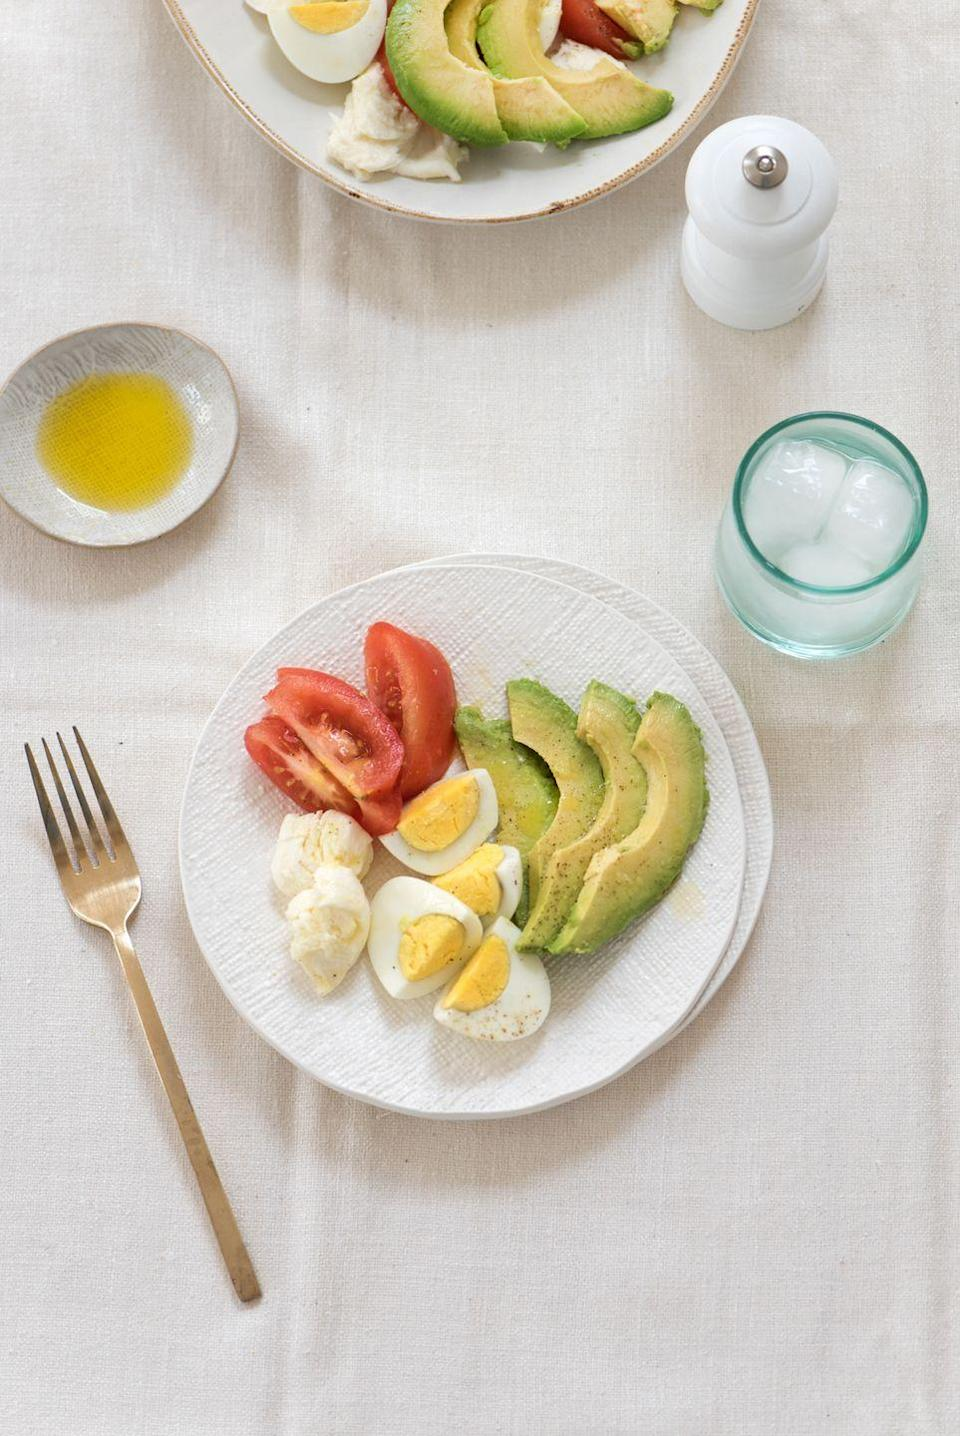 """<p>Kourtney's low-carb lunch includes hard-boiled eggs for protein, as well as avocado, tomato, and fresh mozzarella cheese (though these days, she eats mostly dairy-free). You can snag the recipe on <a href=""""https://poosh.com/kourtney-salad/"""" rel=""""nofollow noopener"""" target=""""_blank"""" data-ylk=""""slk:Poosh"""" class=""""link rapid-noclick-resp"""">Poosh</a>. </p>"""